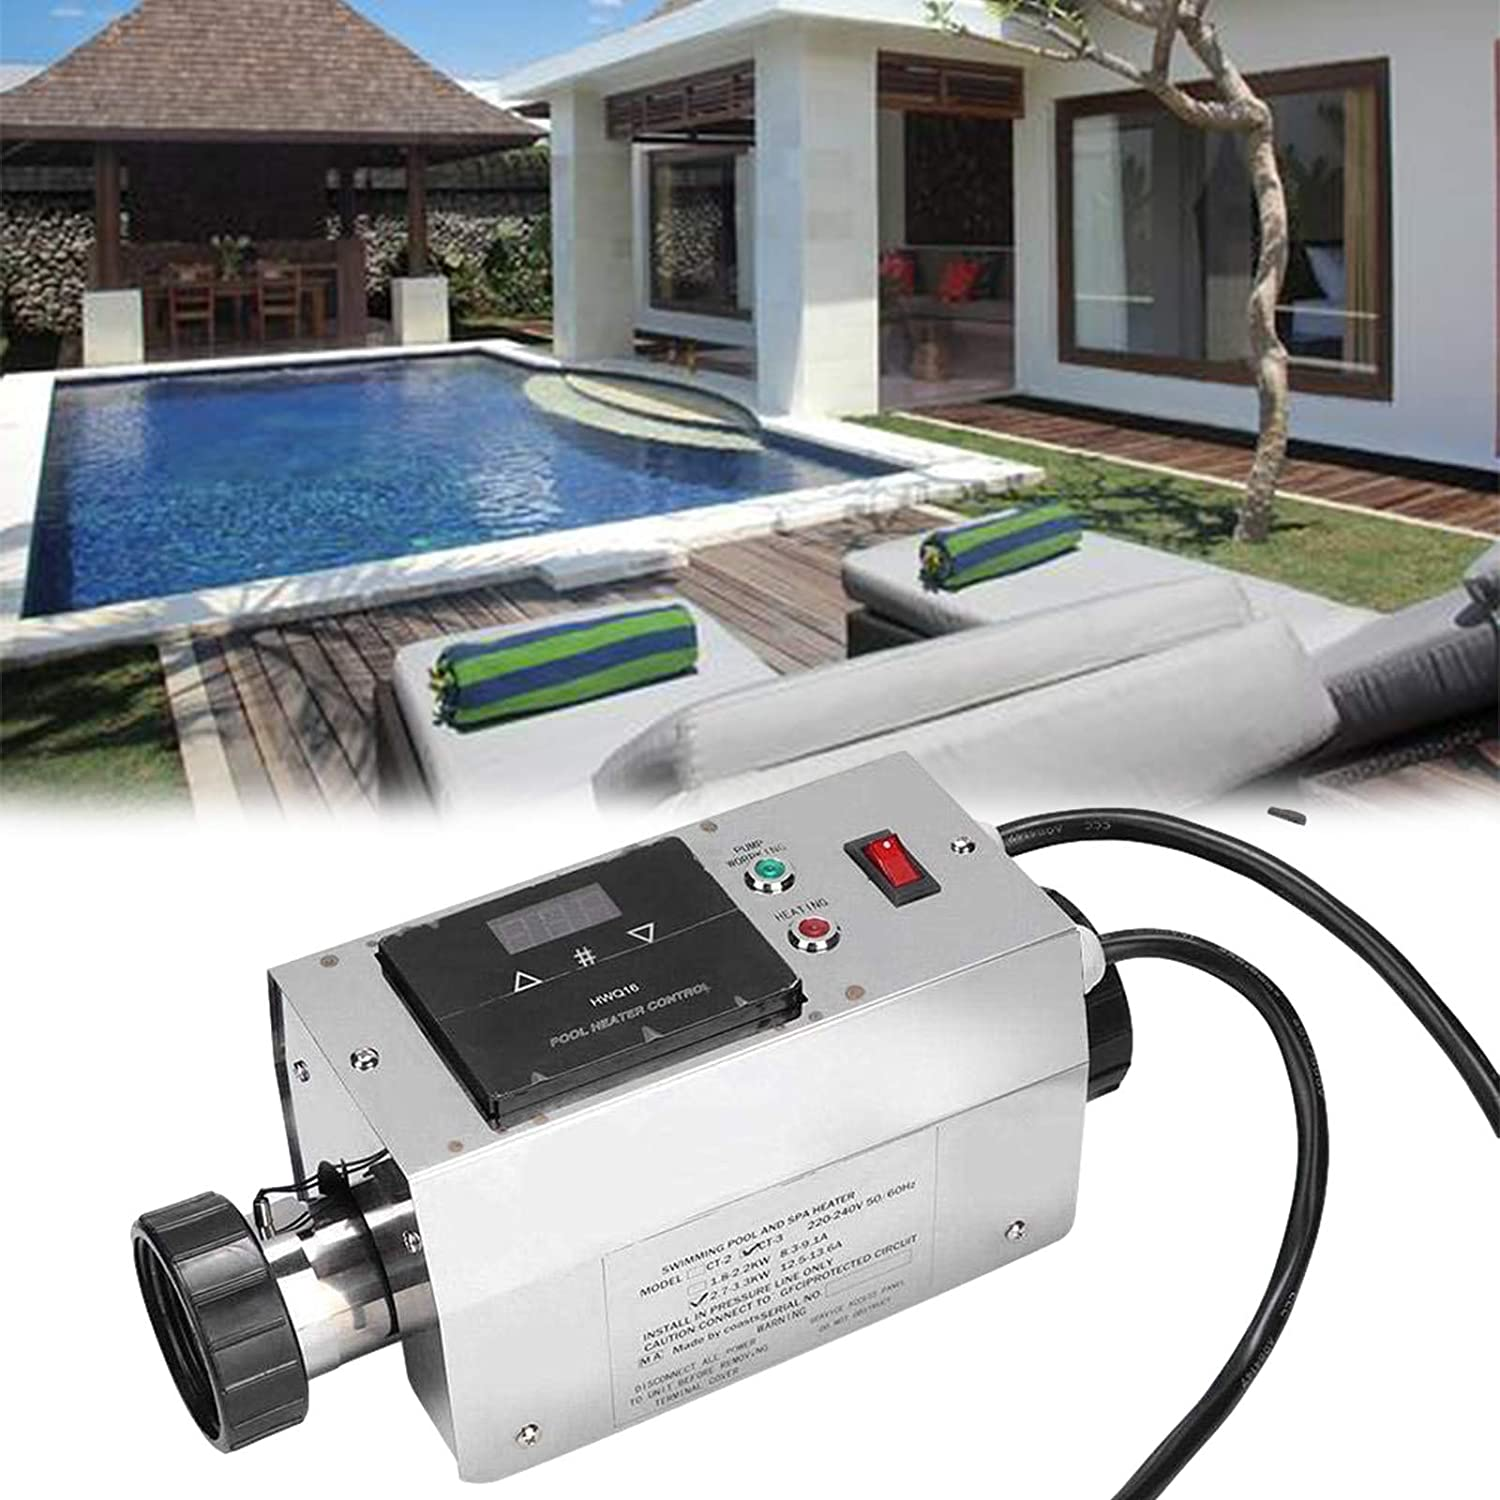 N\C 3KW Pool Heater Thermostat Gifts Poo Waterproof for Outstanding fit